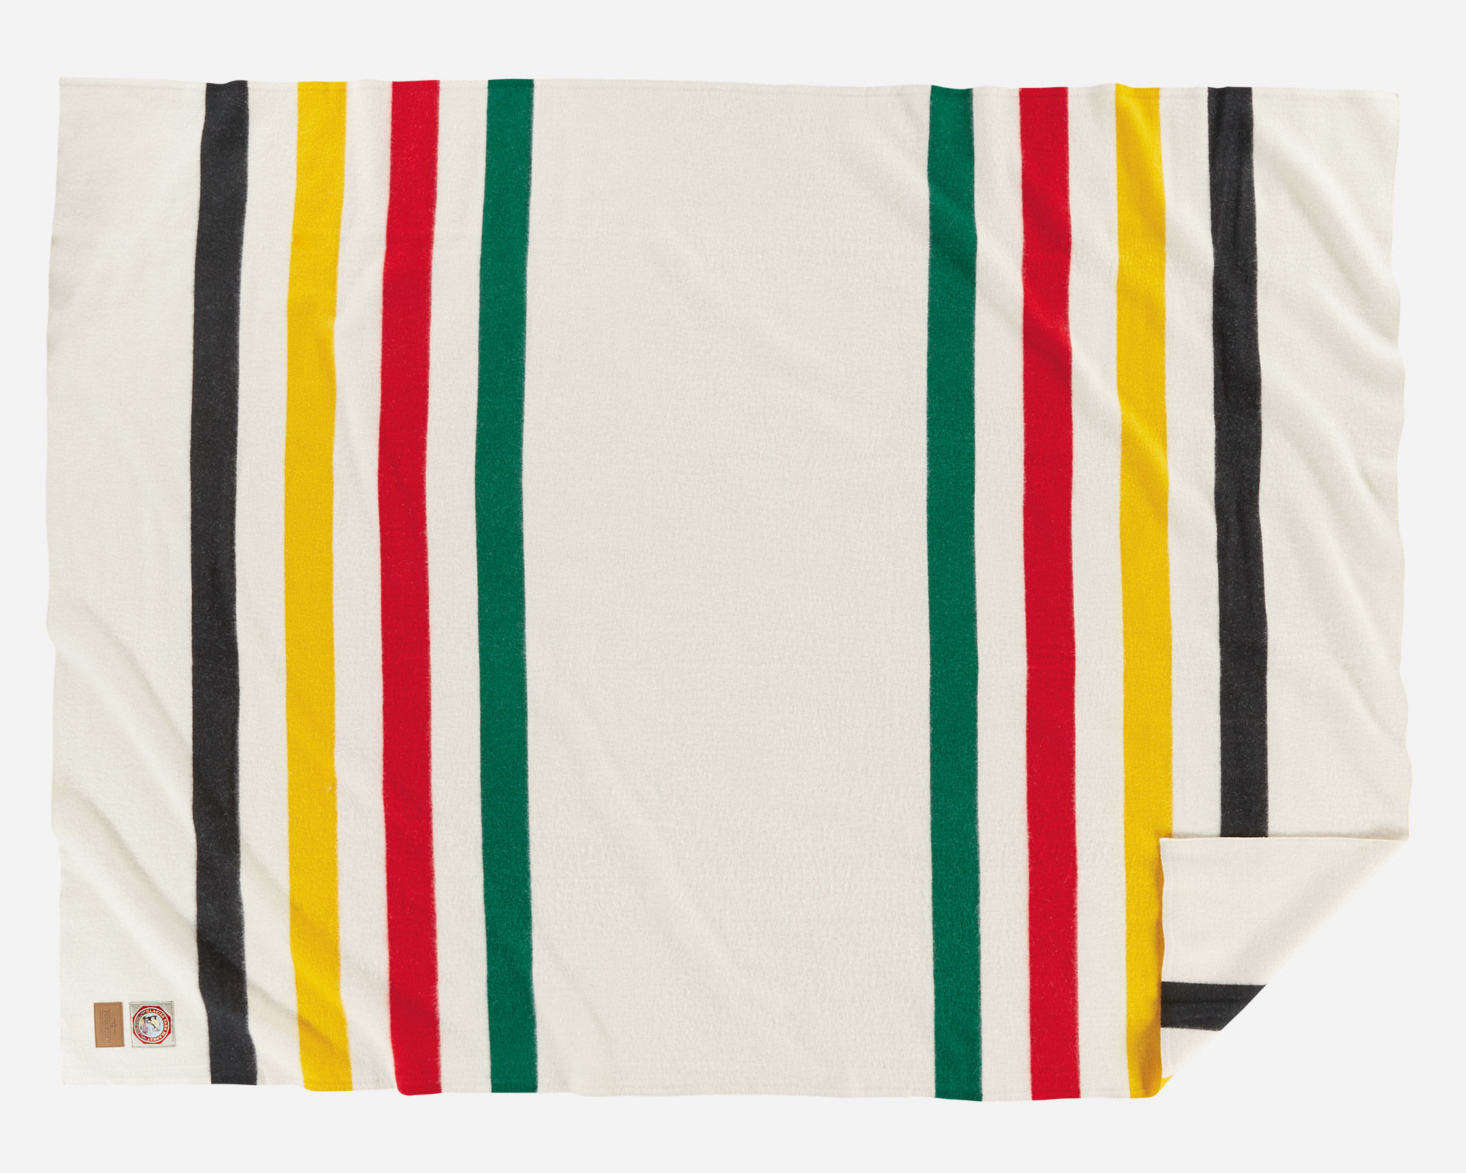 Pendleton's Glacier National Park Blanket starts at $179 for the throw size at Backcountry.